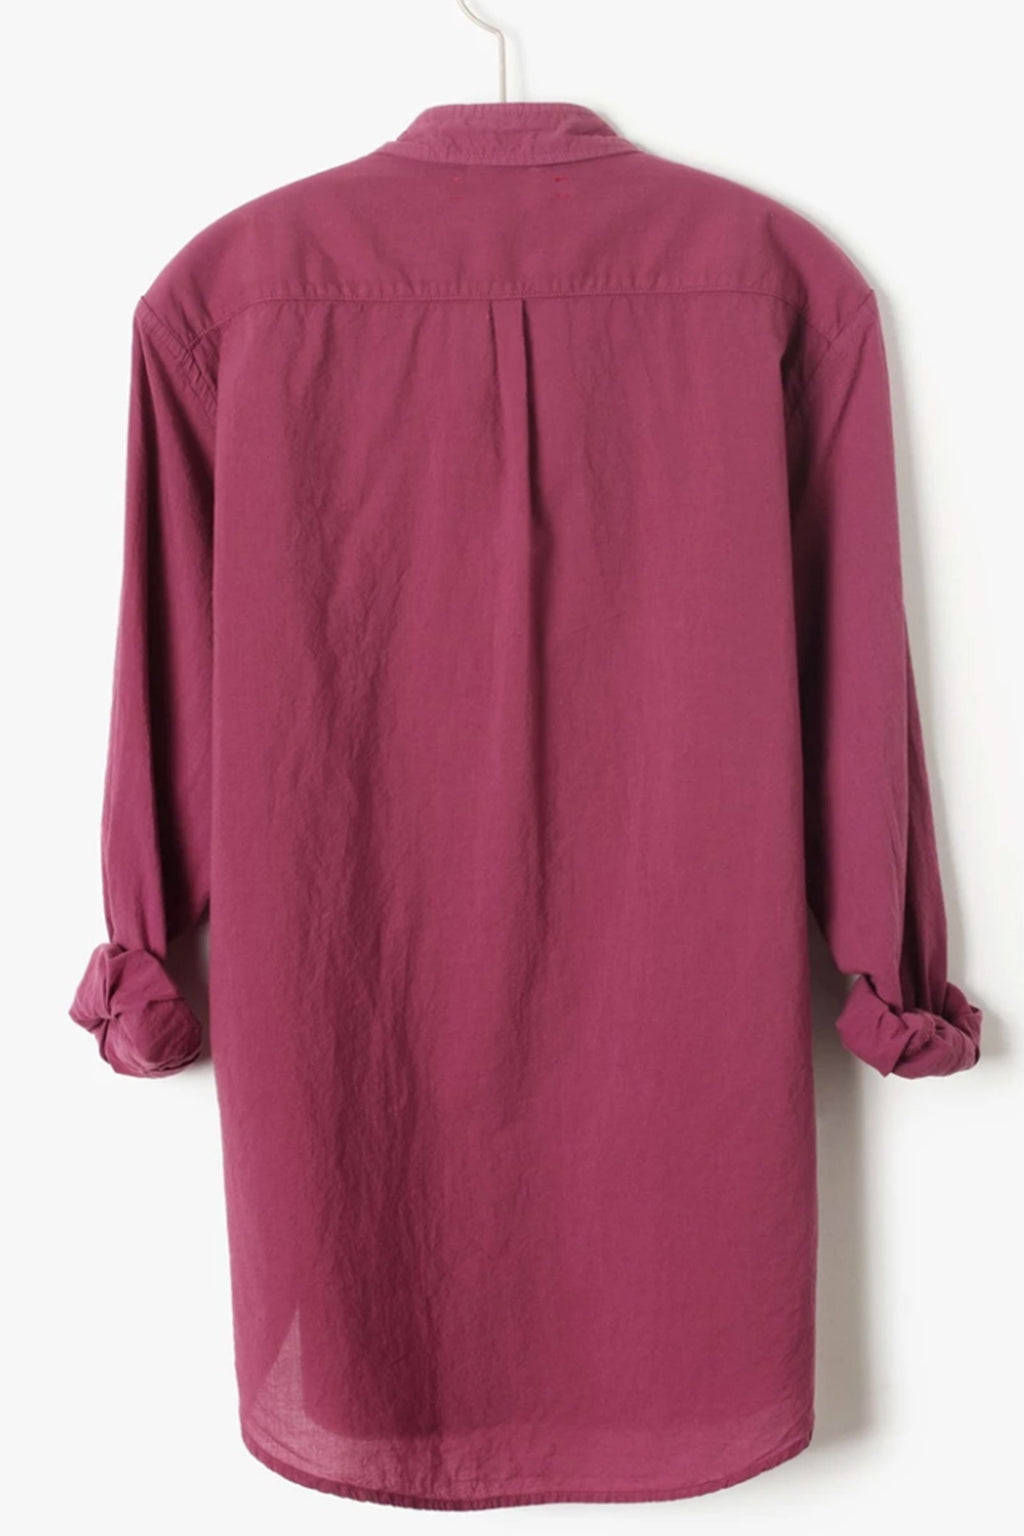 Xirena Longsleeve Beau Shirt in Fig